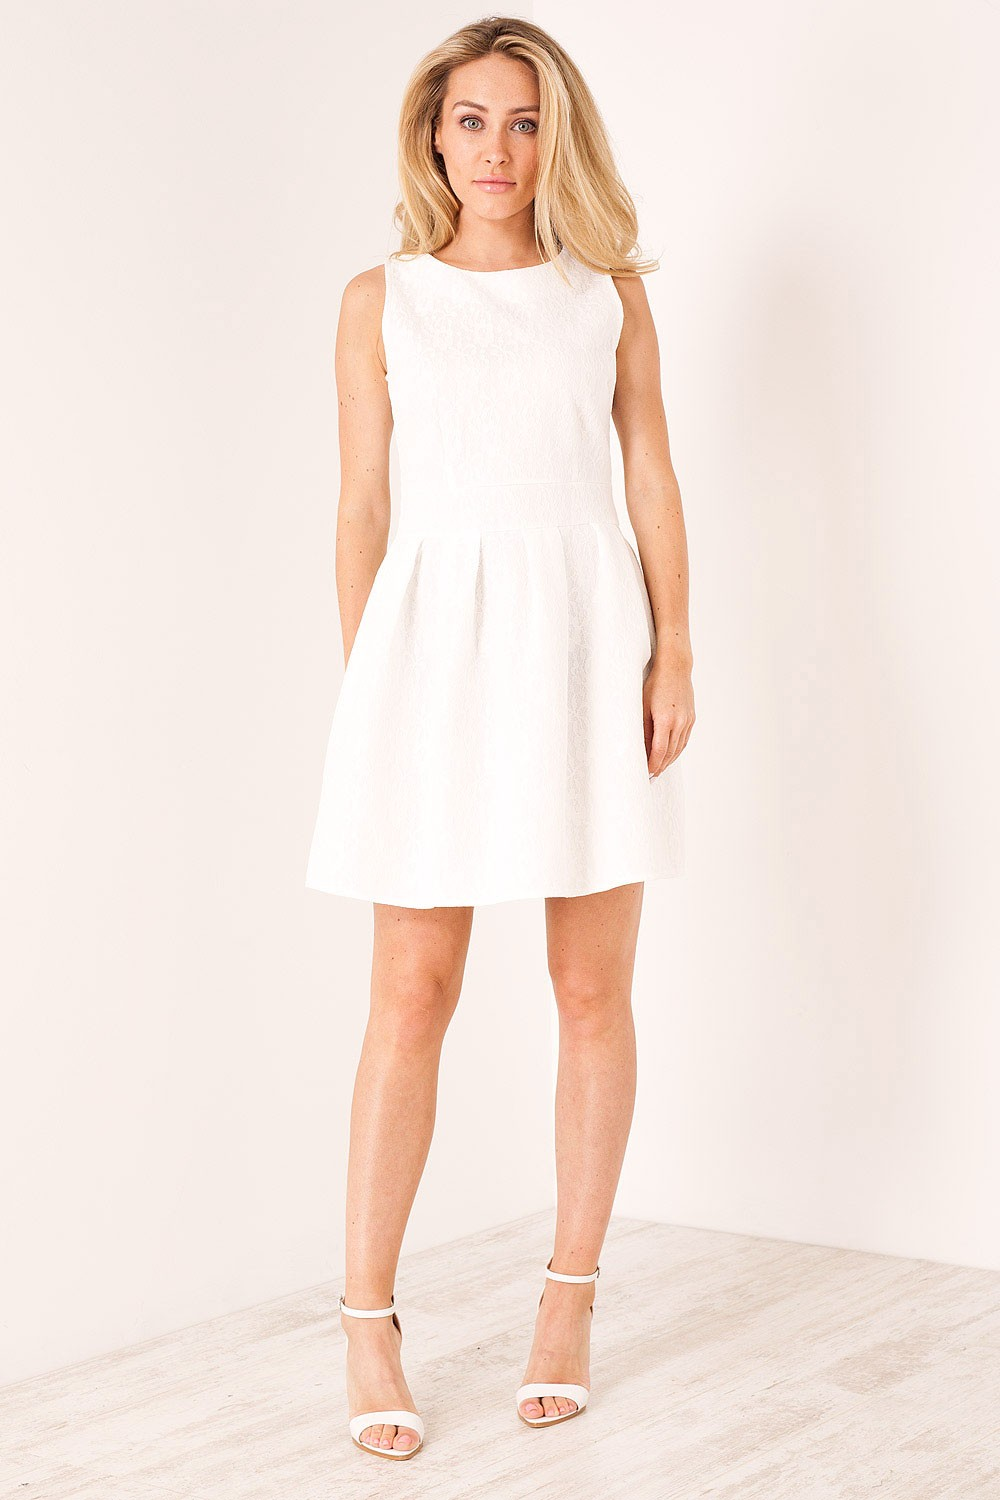 Shikha Sarah Lace Skater Dress In White Iclothing